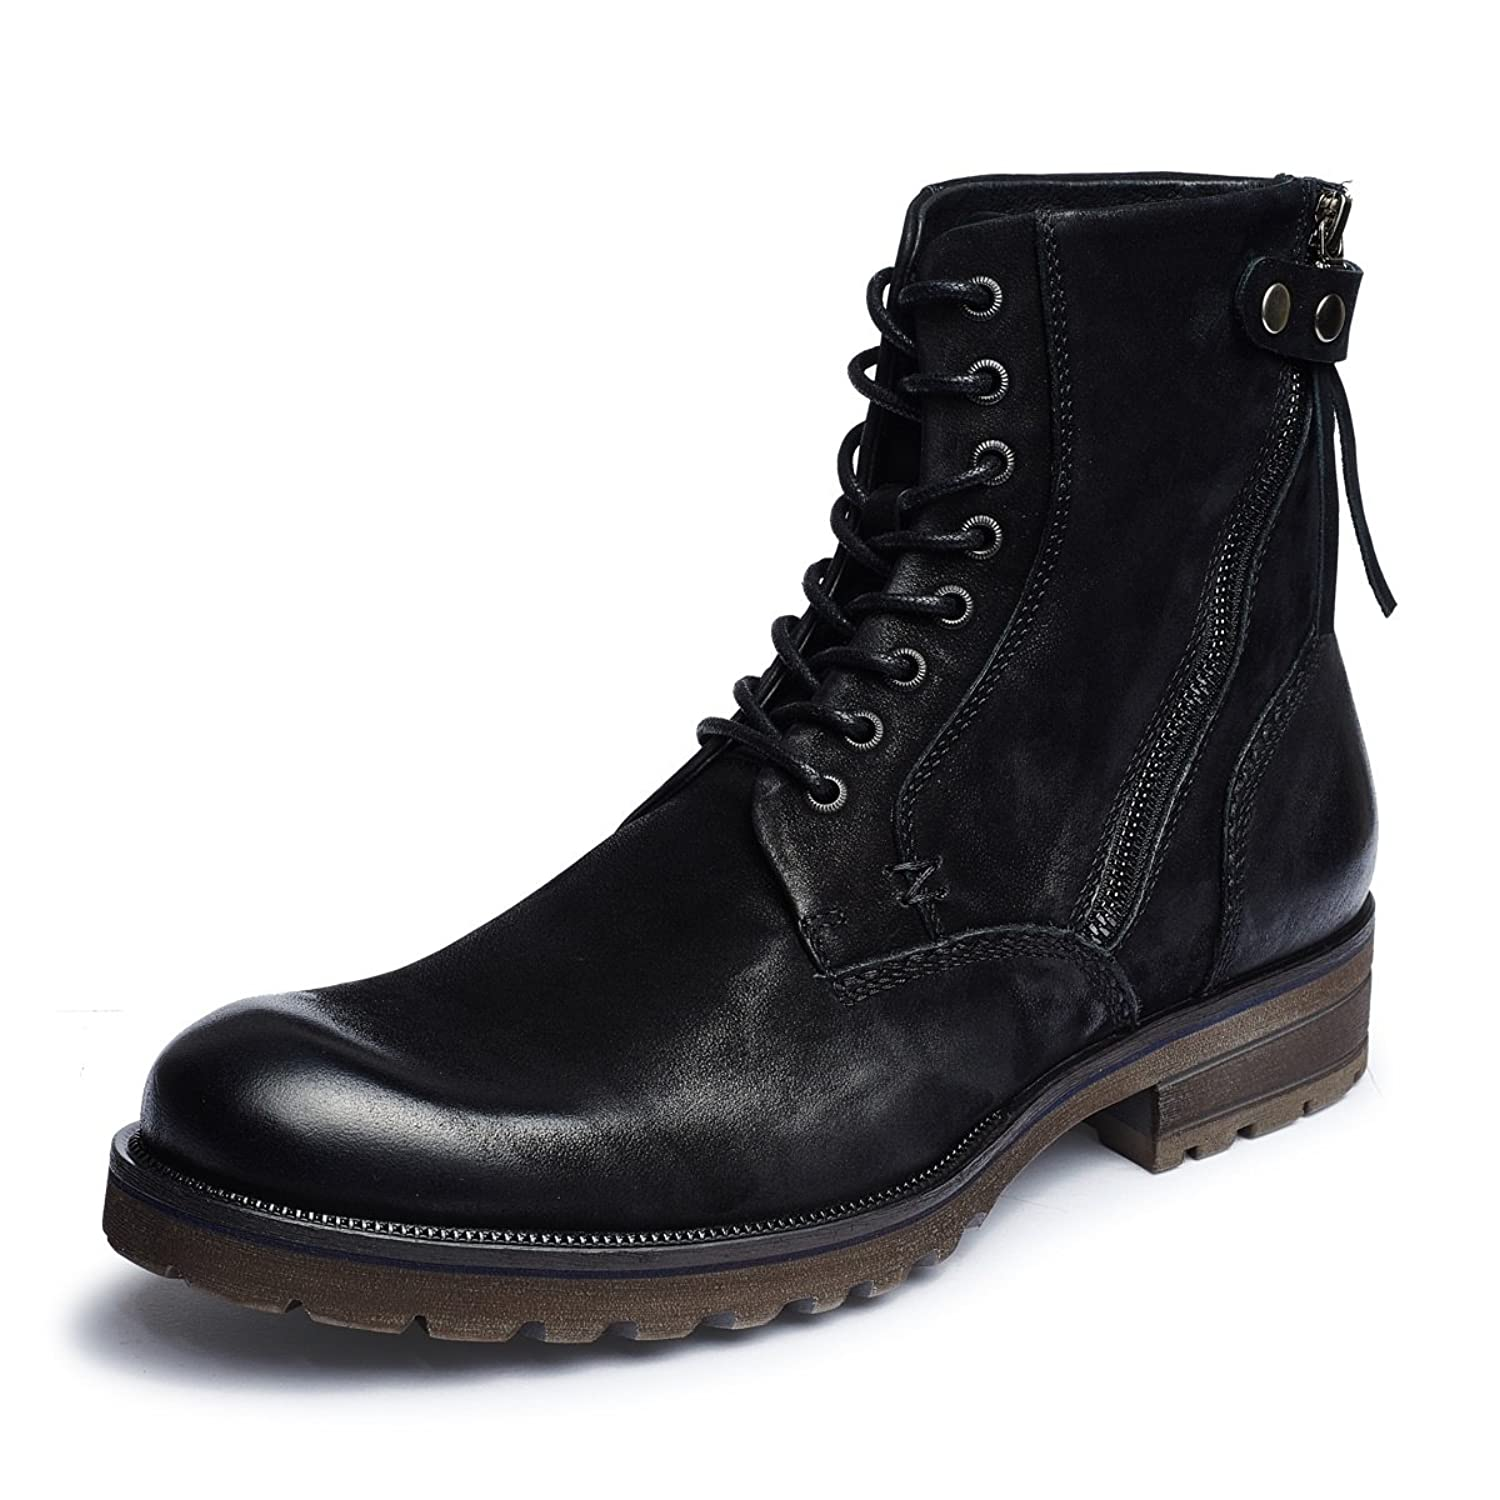 Aide Baou Men's Fashion Military Ranger Nubuck Leather Pull On Side Zip Ankle Boots